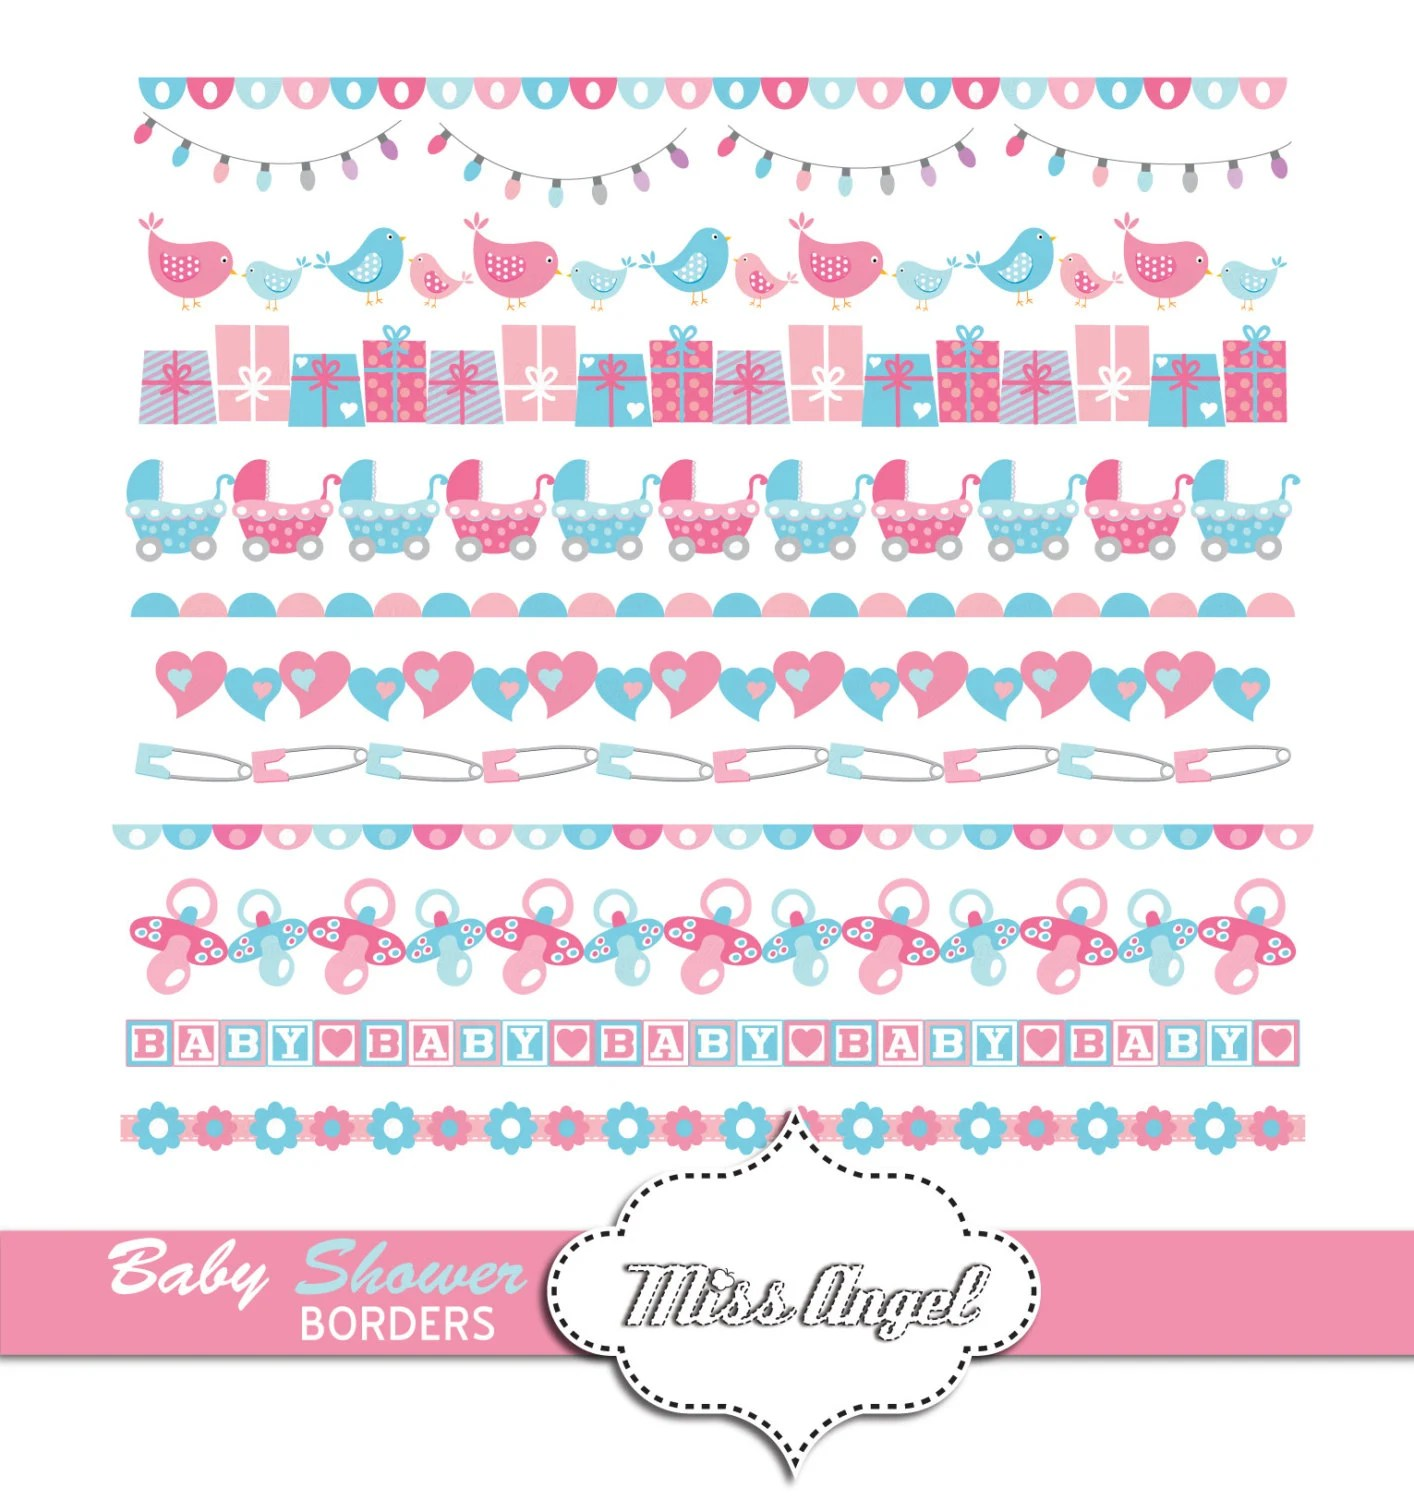 Baby bunting banners BUY 2 GET 1 FREE buy 4 get 2 free Baby Etsy